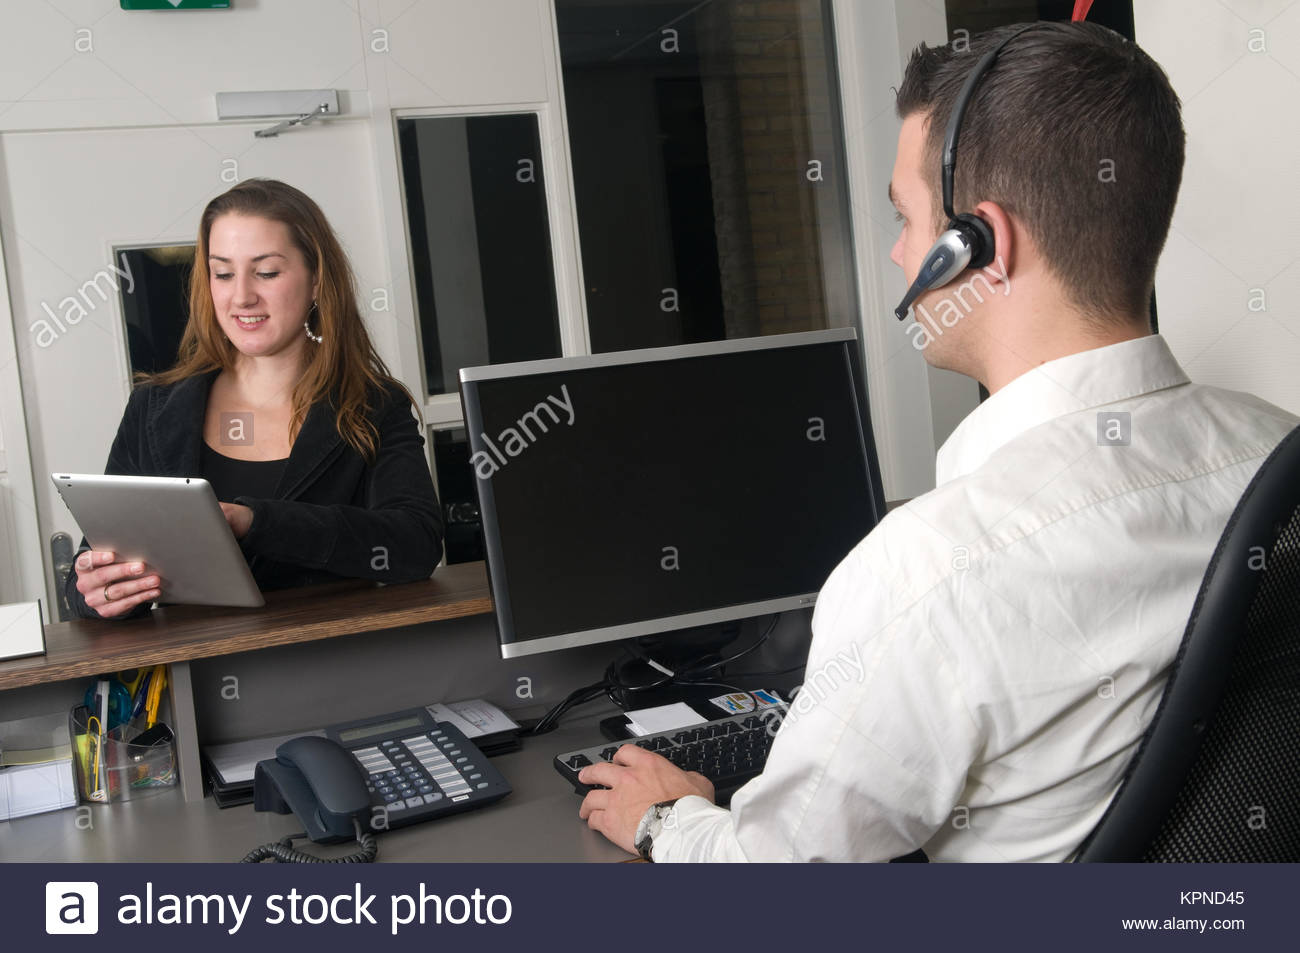 Customer at a service desk - Stock Image